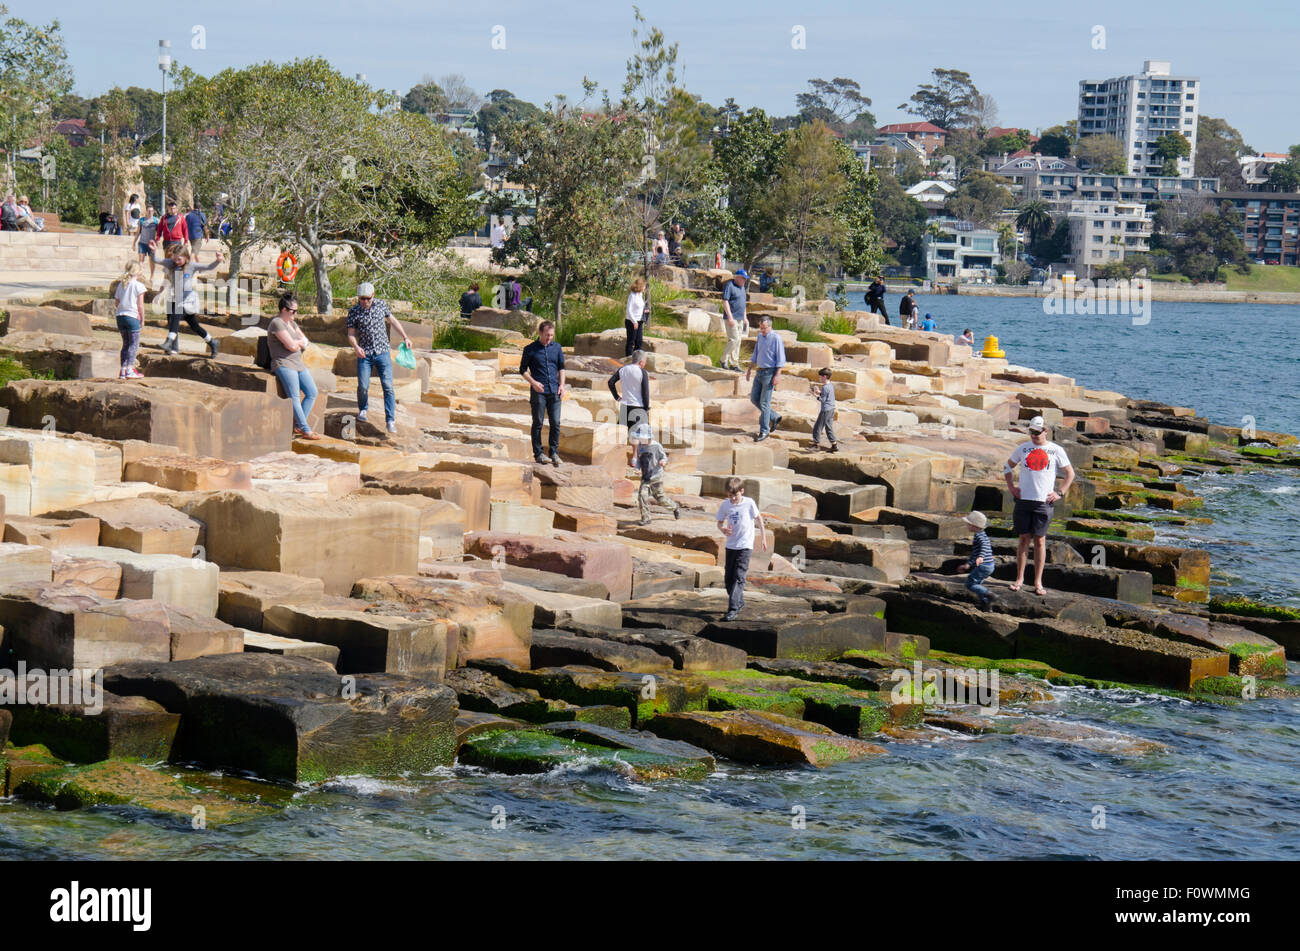 Barangaroo Headland Sydney Australia 22nd Aug 2015